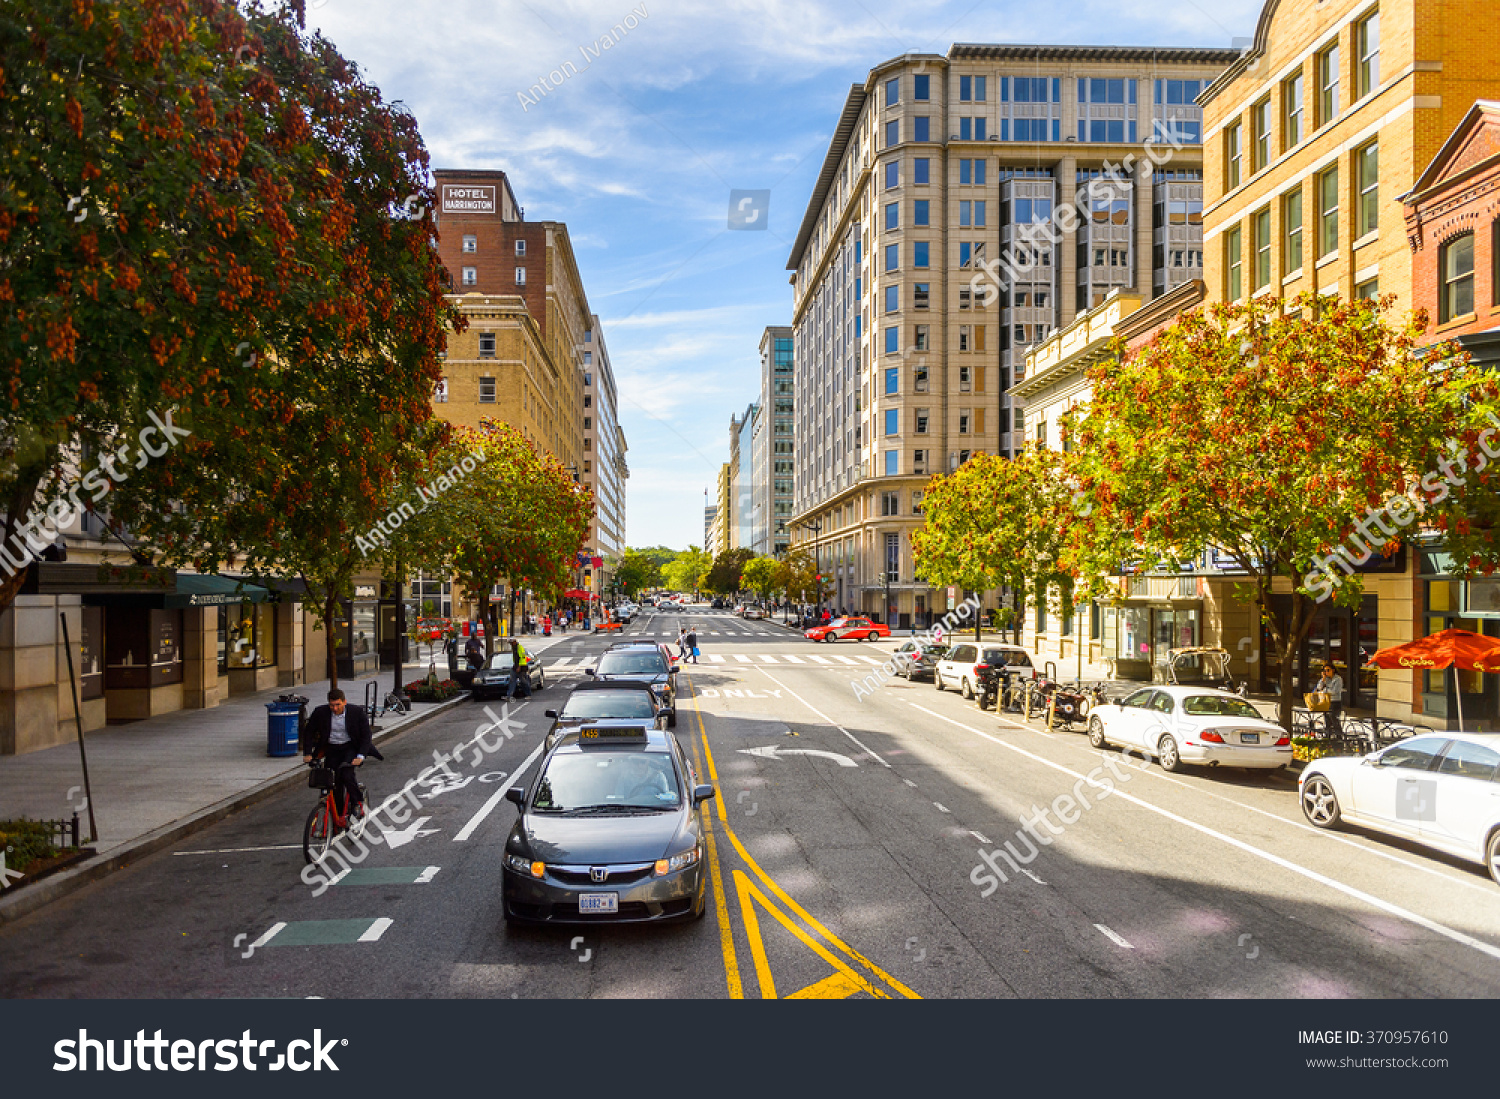 WASHINGTON USA SEP 24 2015 Architecture and traffic of Washington DC Washington is the capital of the United States